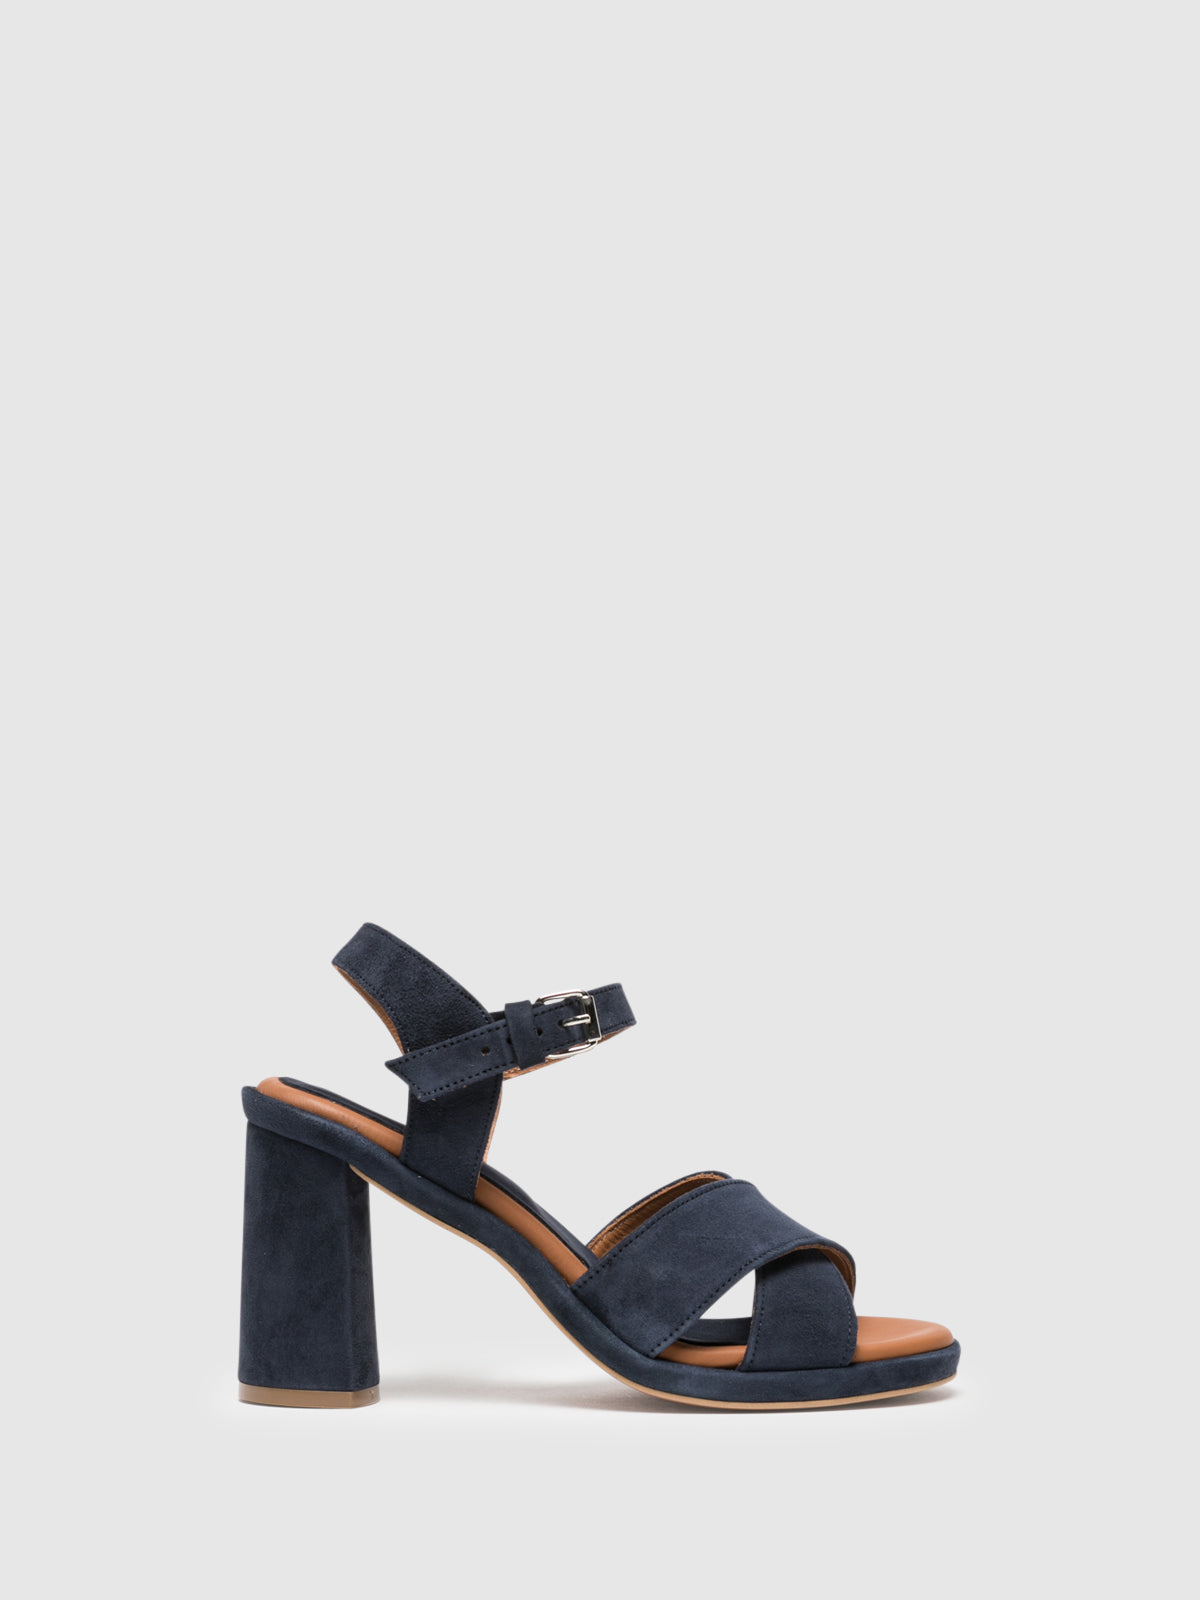 Clay's Blue Heel Sandals